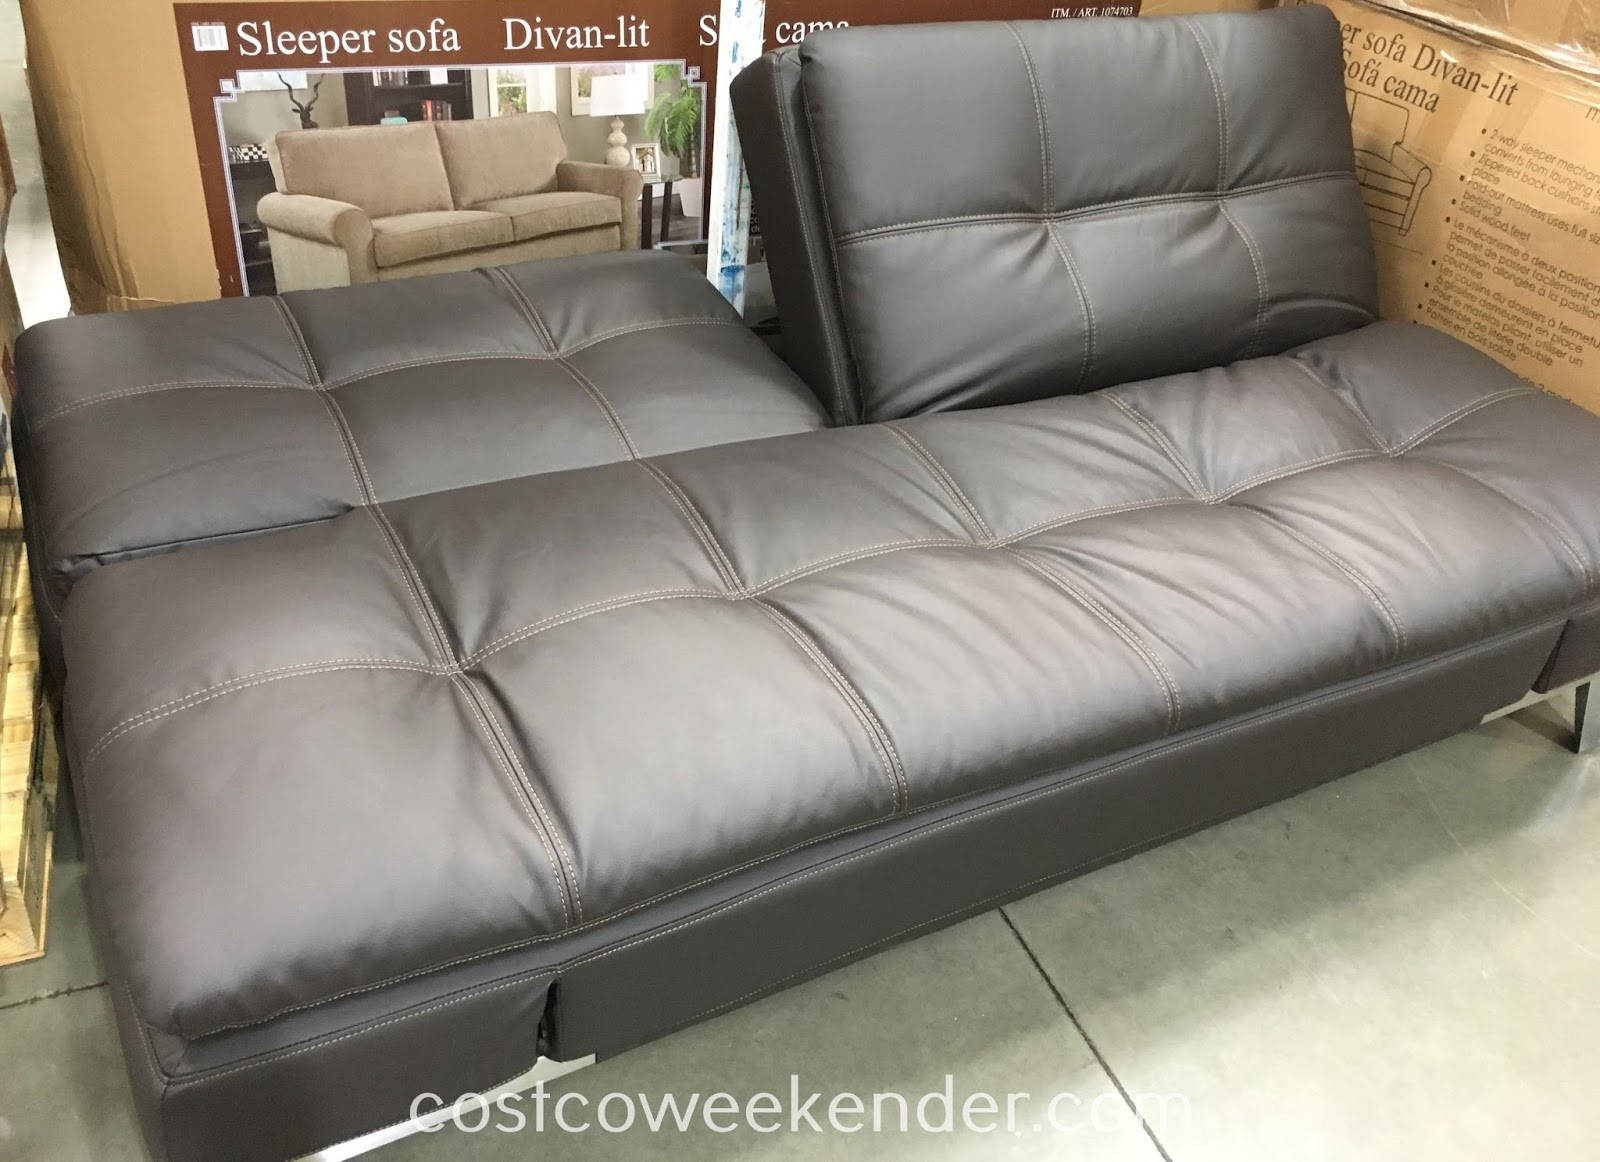 sofa bed lounger best style for small room lifestyle solutions euro costco weekender